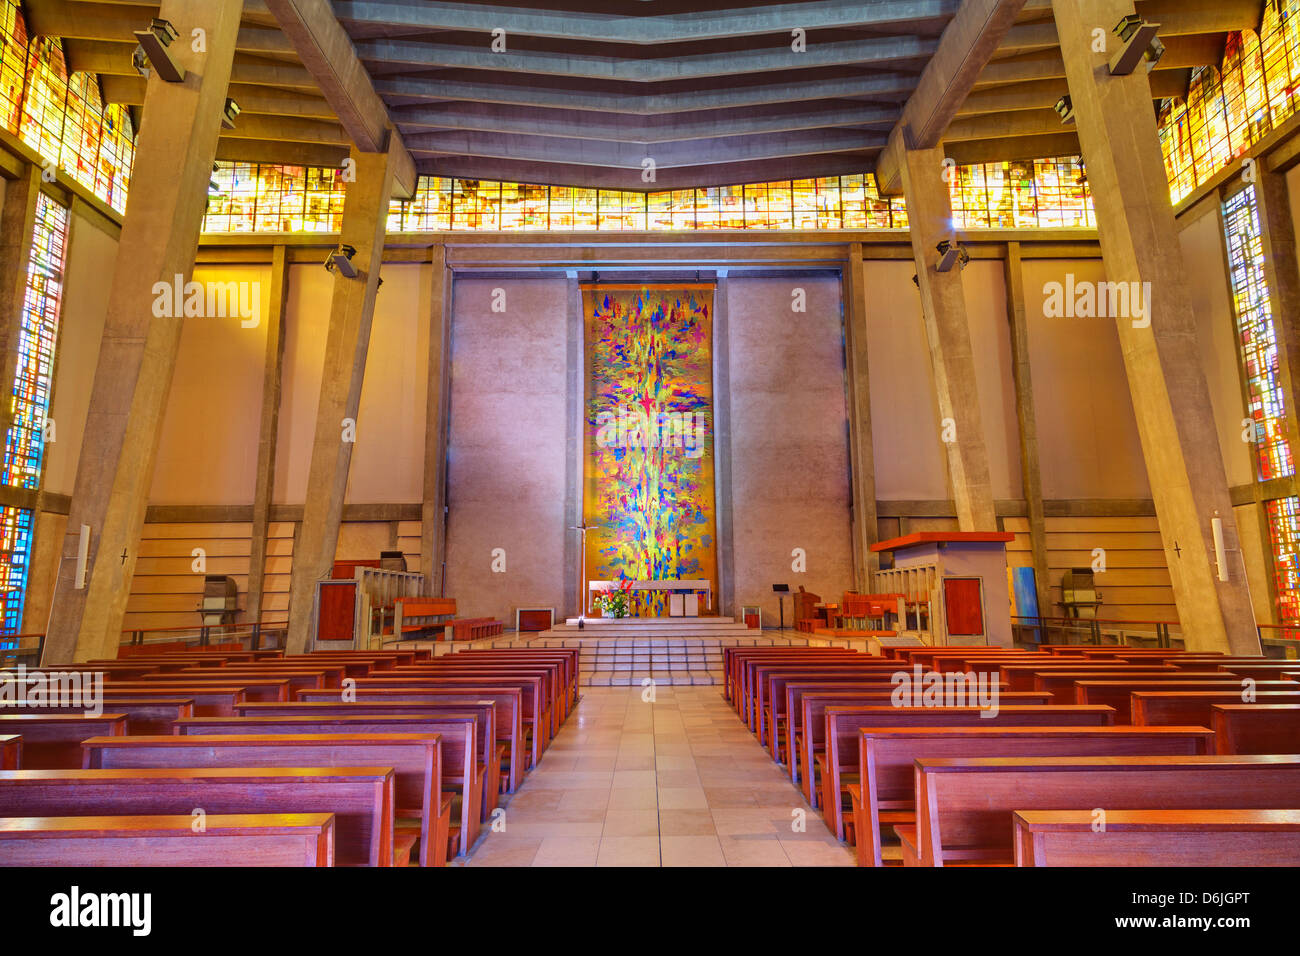 Saint Michel du Havre Church, Le Havre, Normandy, France, Europe - Stock Image